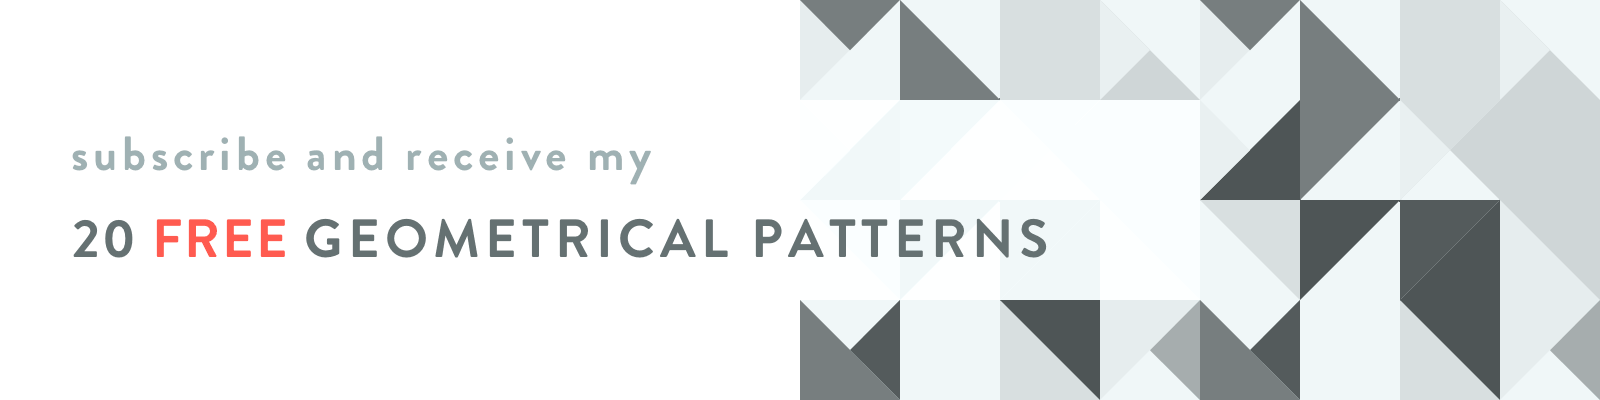 subscribe and receive my 20 FREE geometrical patterns